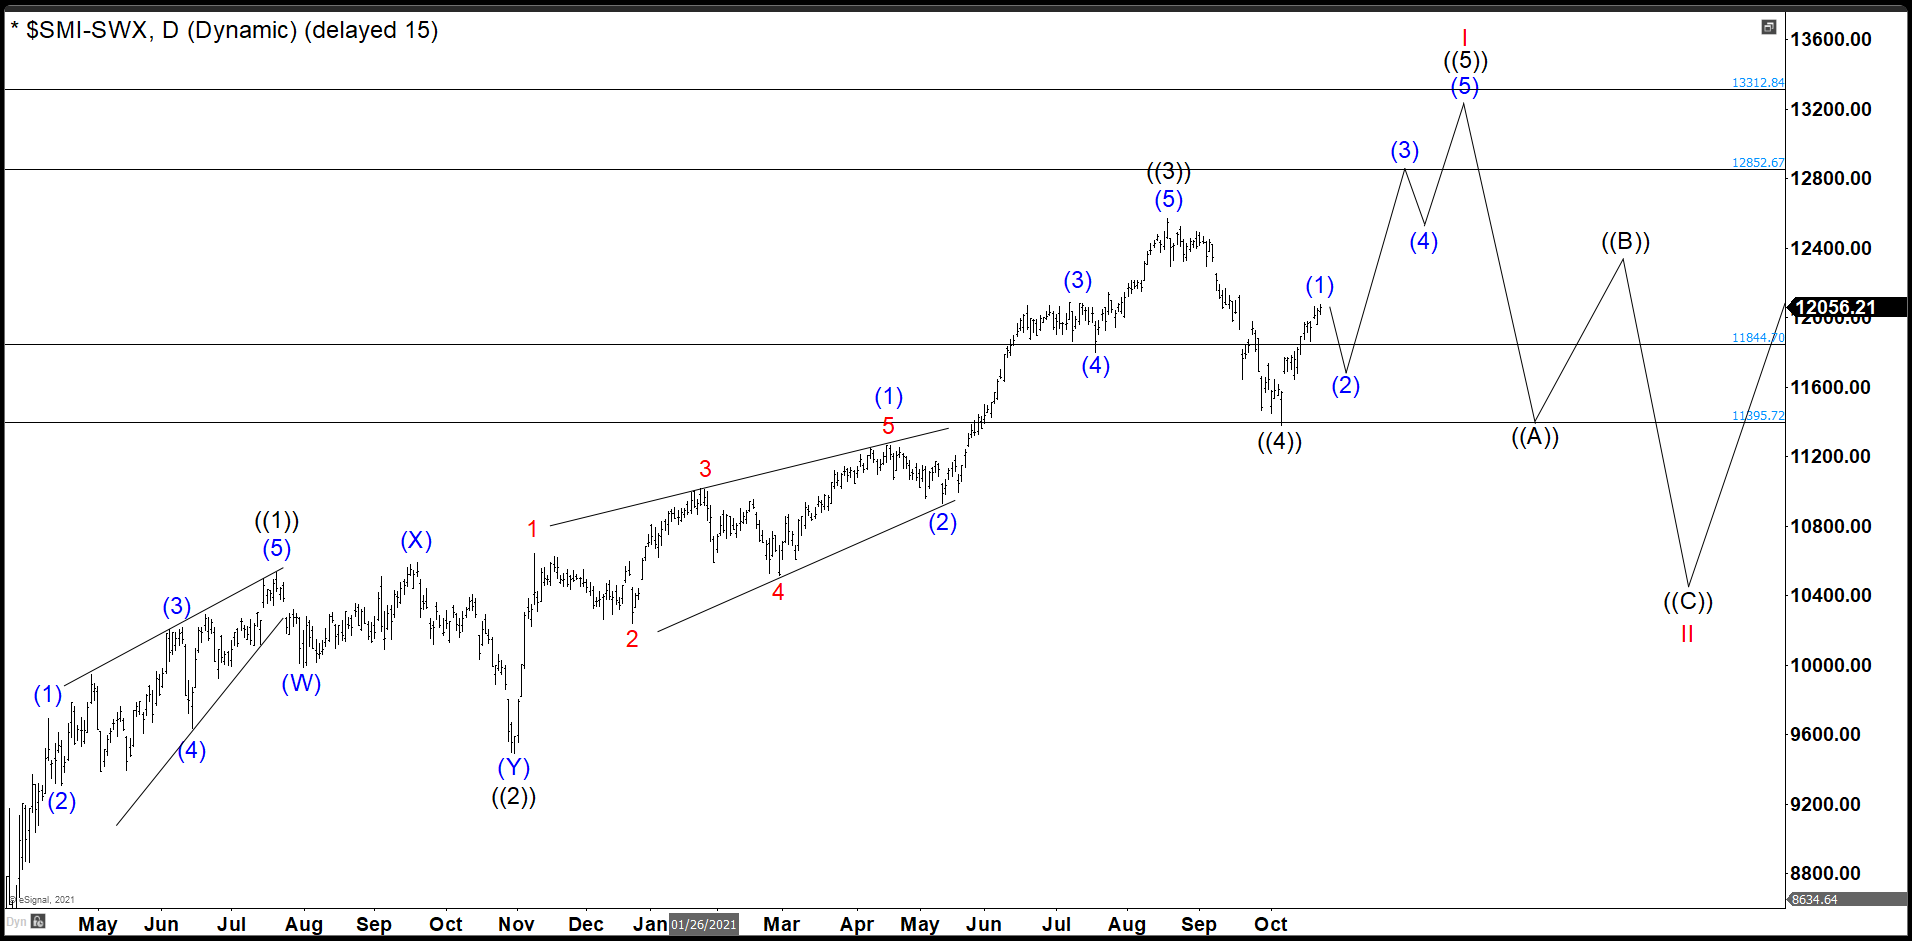 Swiss Market Index (SMI) Has Ended Wave ((4)) Looking Last Push Higher